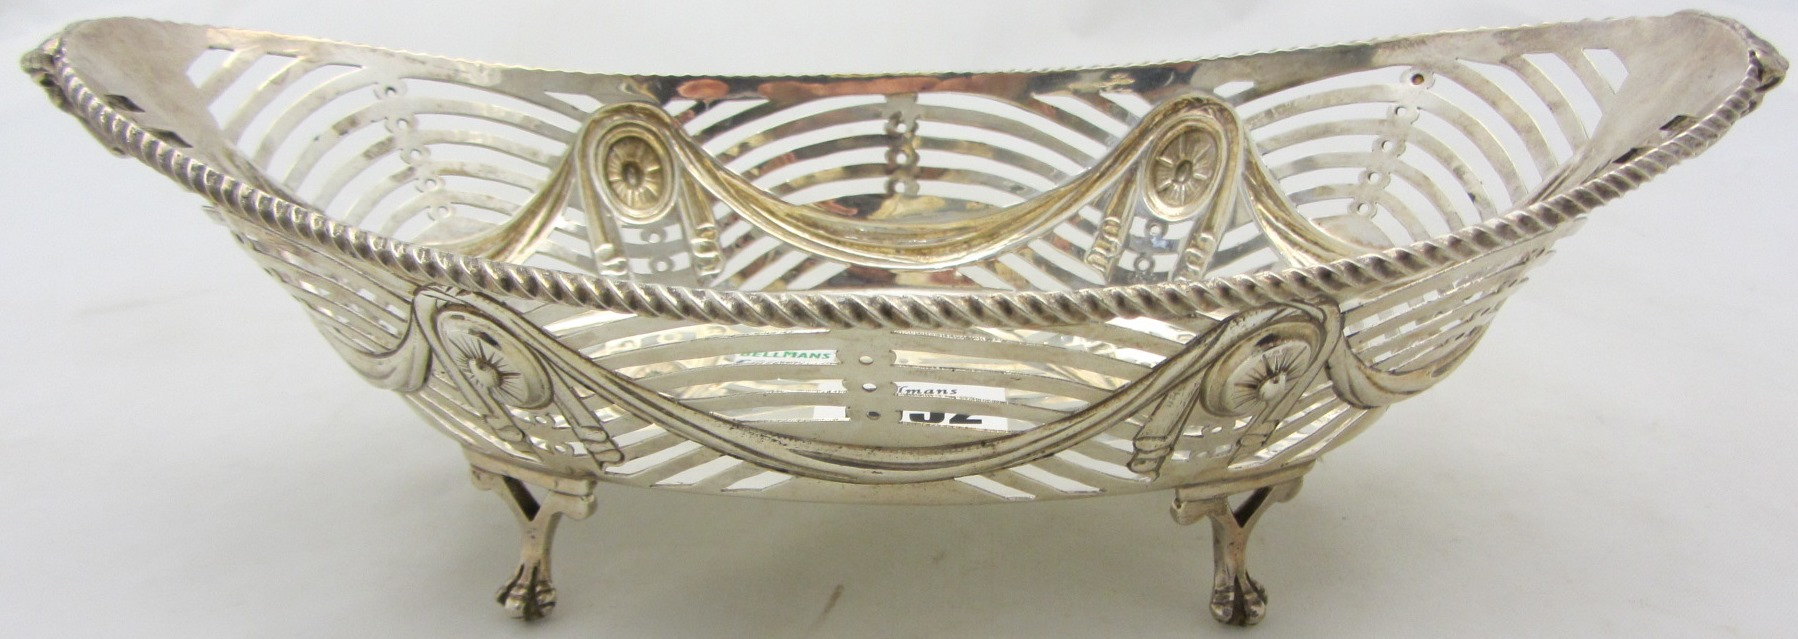 A late Victorian Scottish silver boat shaped